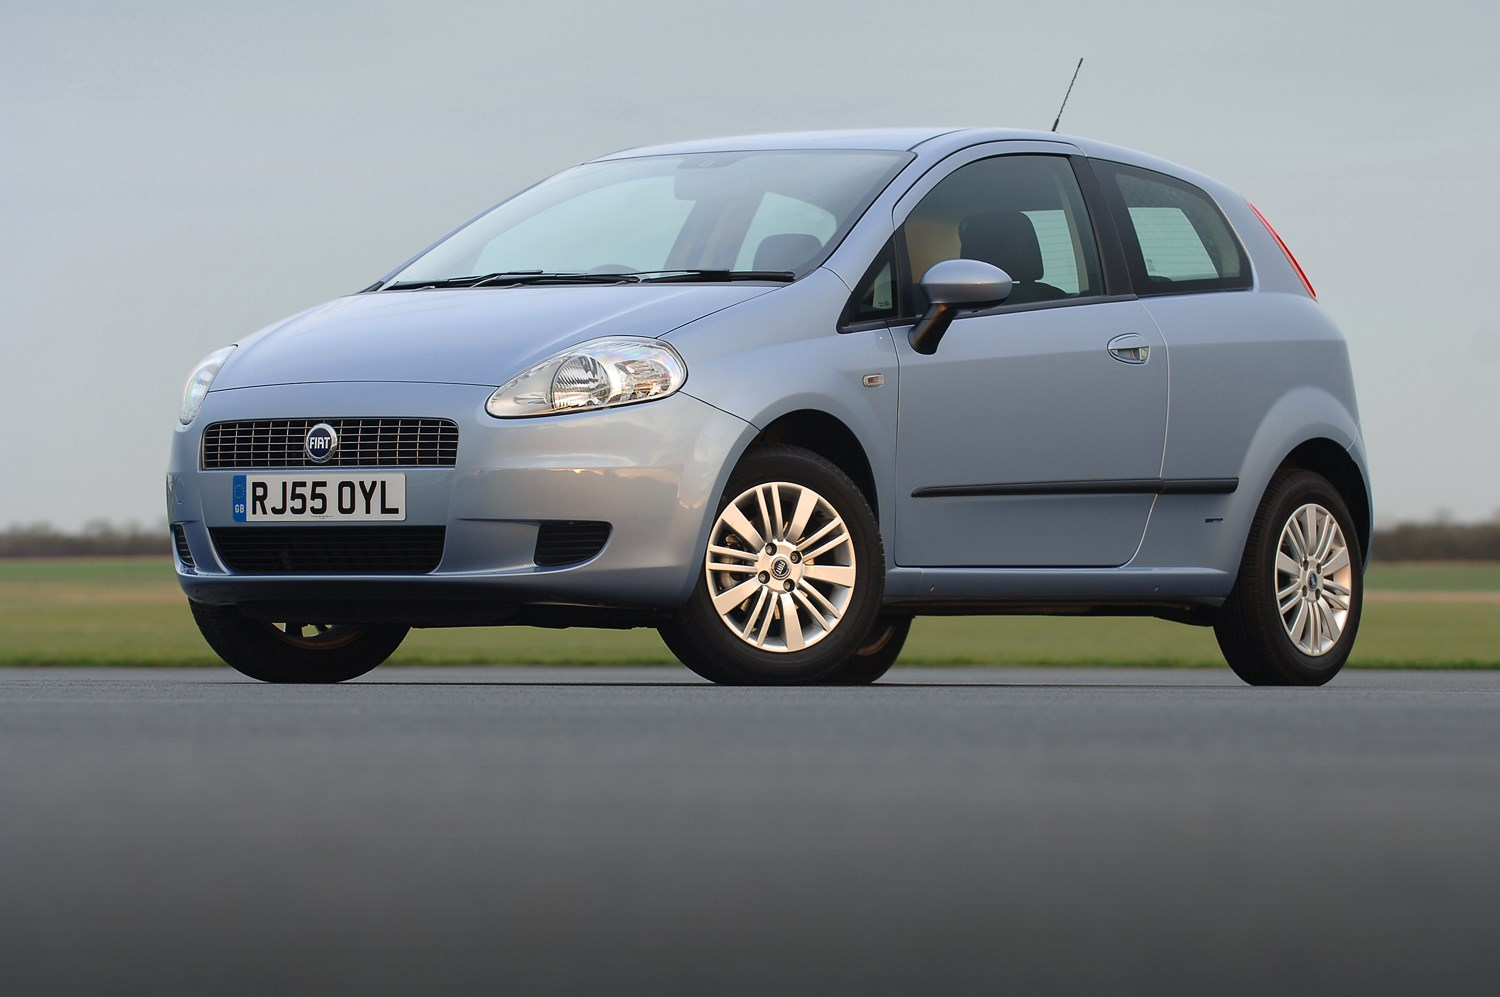 fiat grande punto hatchback review 2006 2010 parkers. Black Bedroom Furniture Sets. Home Design Ideas